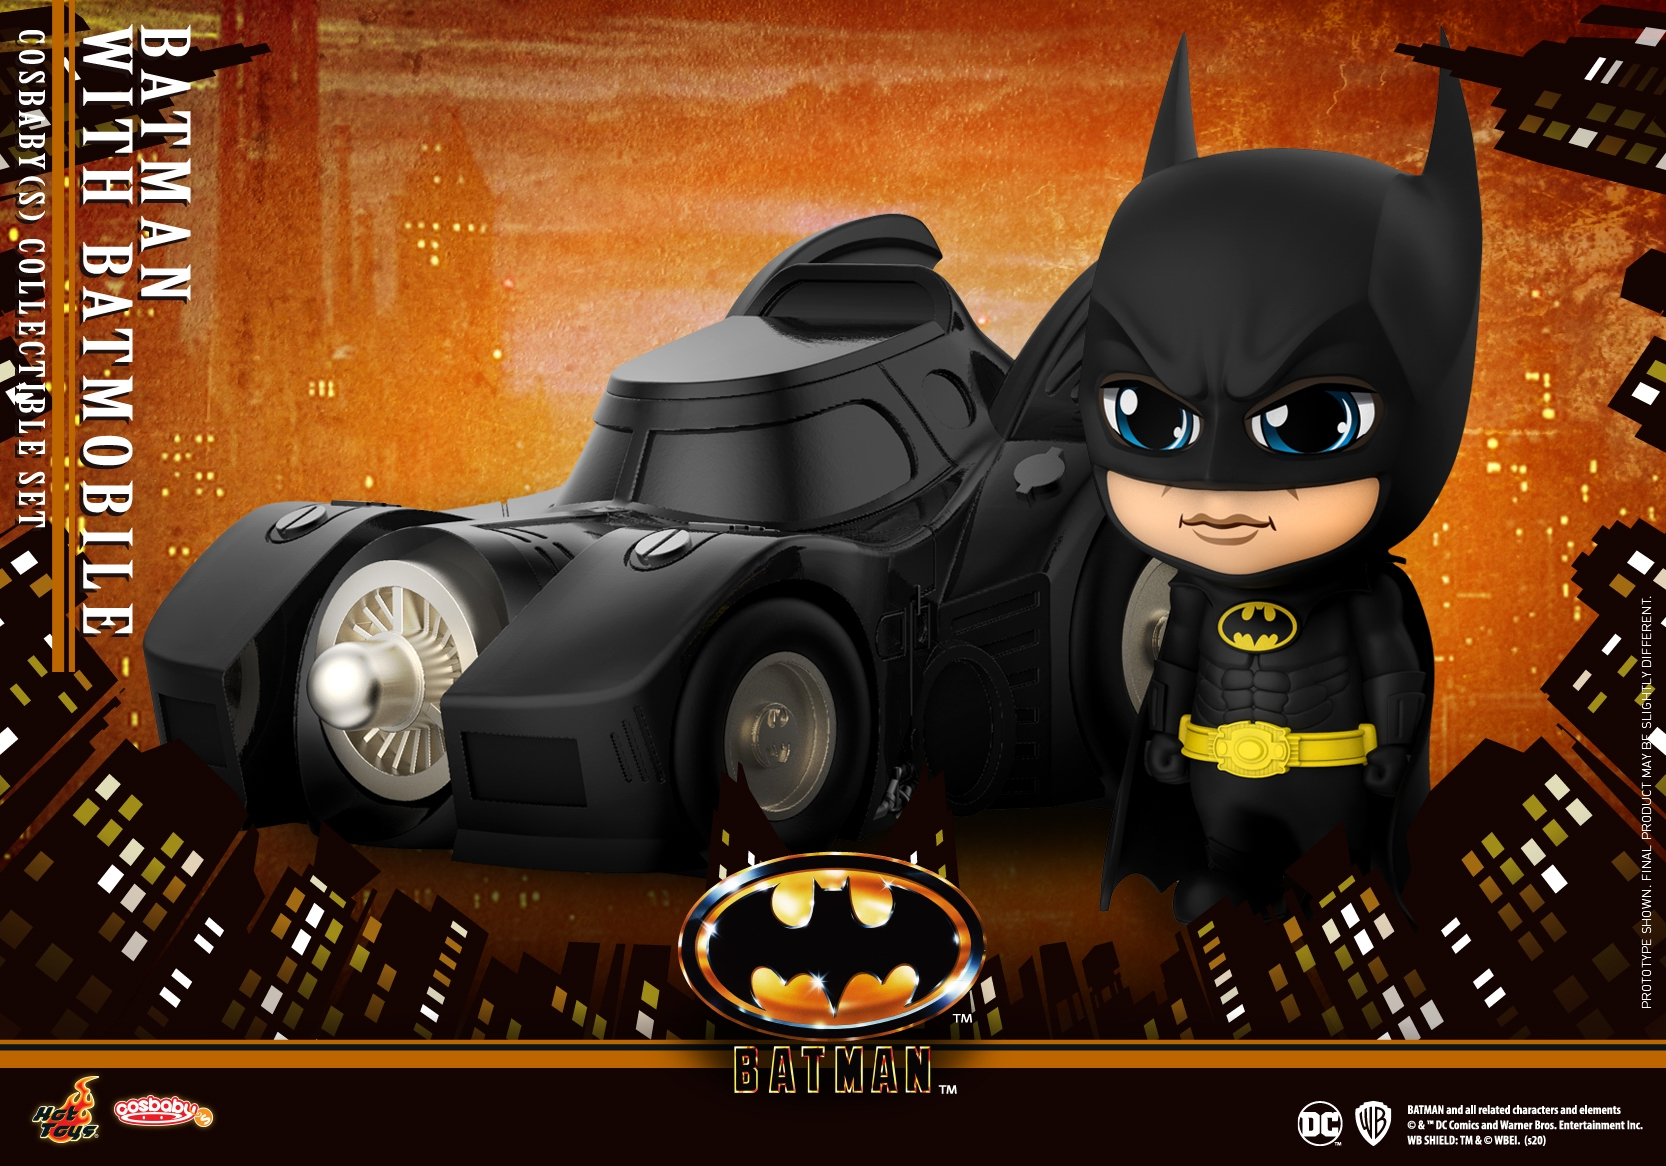 Hot Toys - Batman (1989) - Batman with Batmobile Cosbaby_PR1.jpg